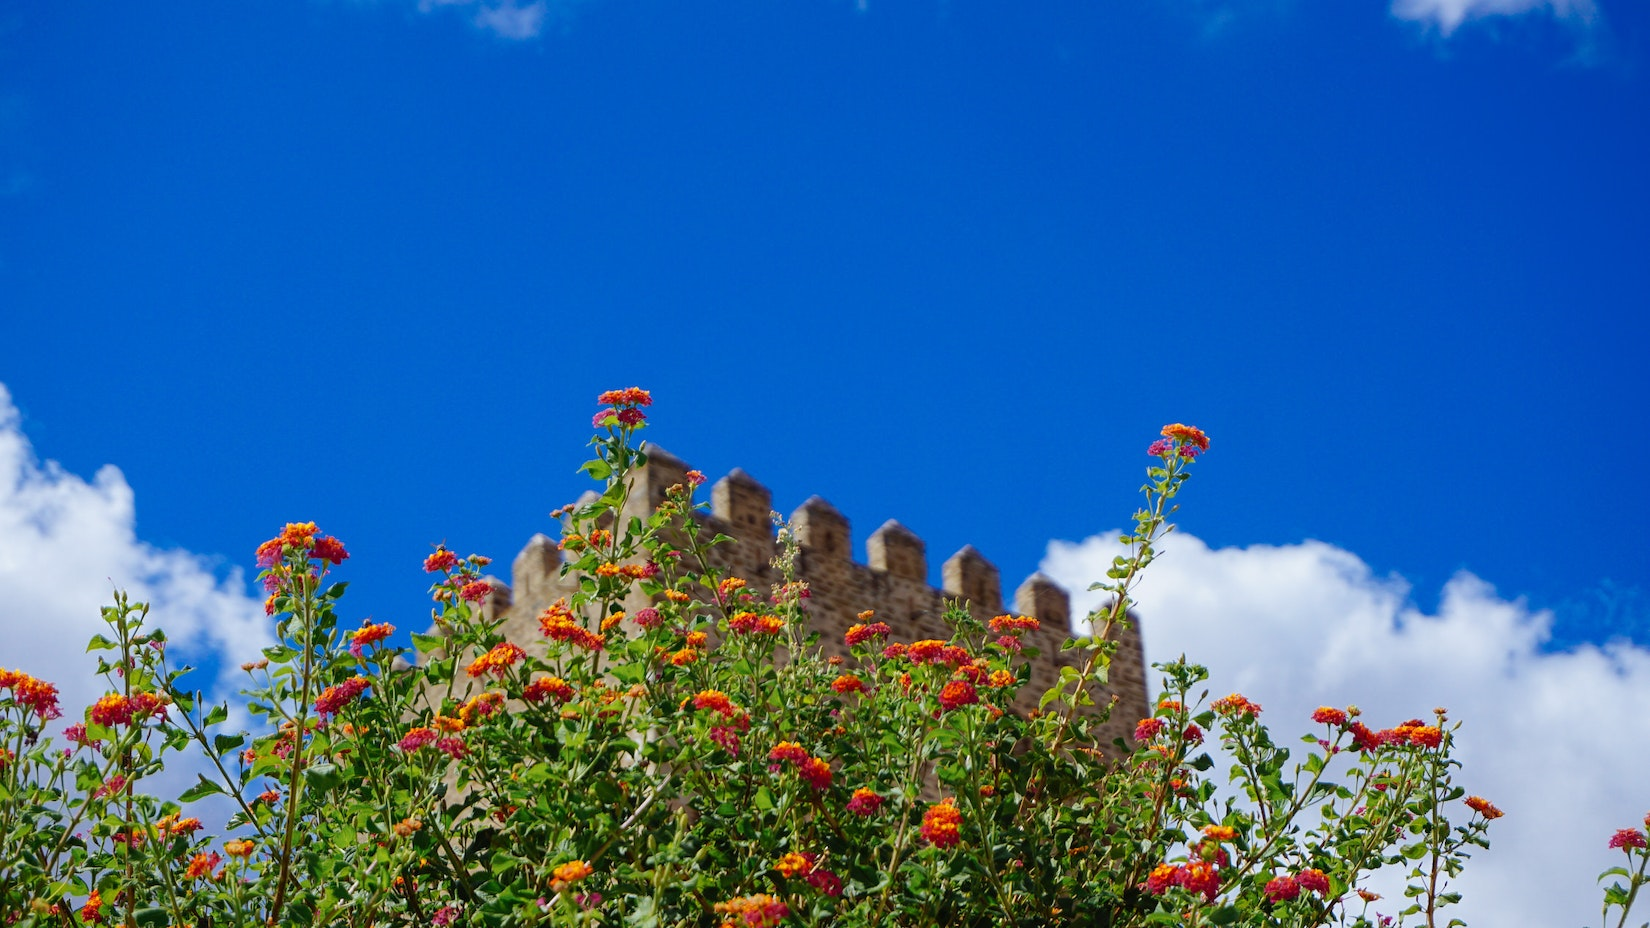 The top of the castle in Mertola